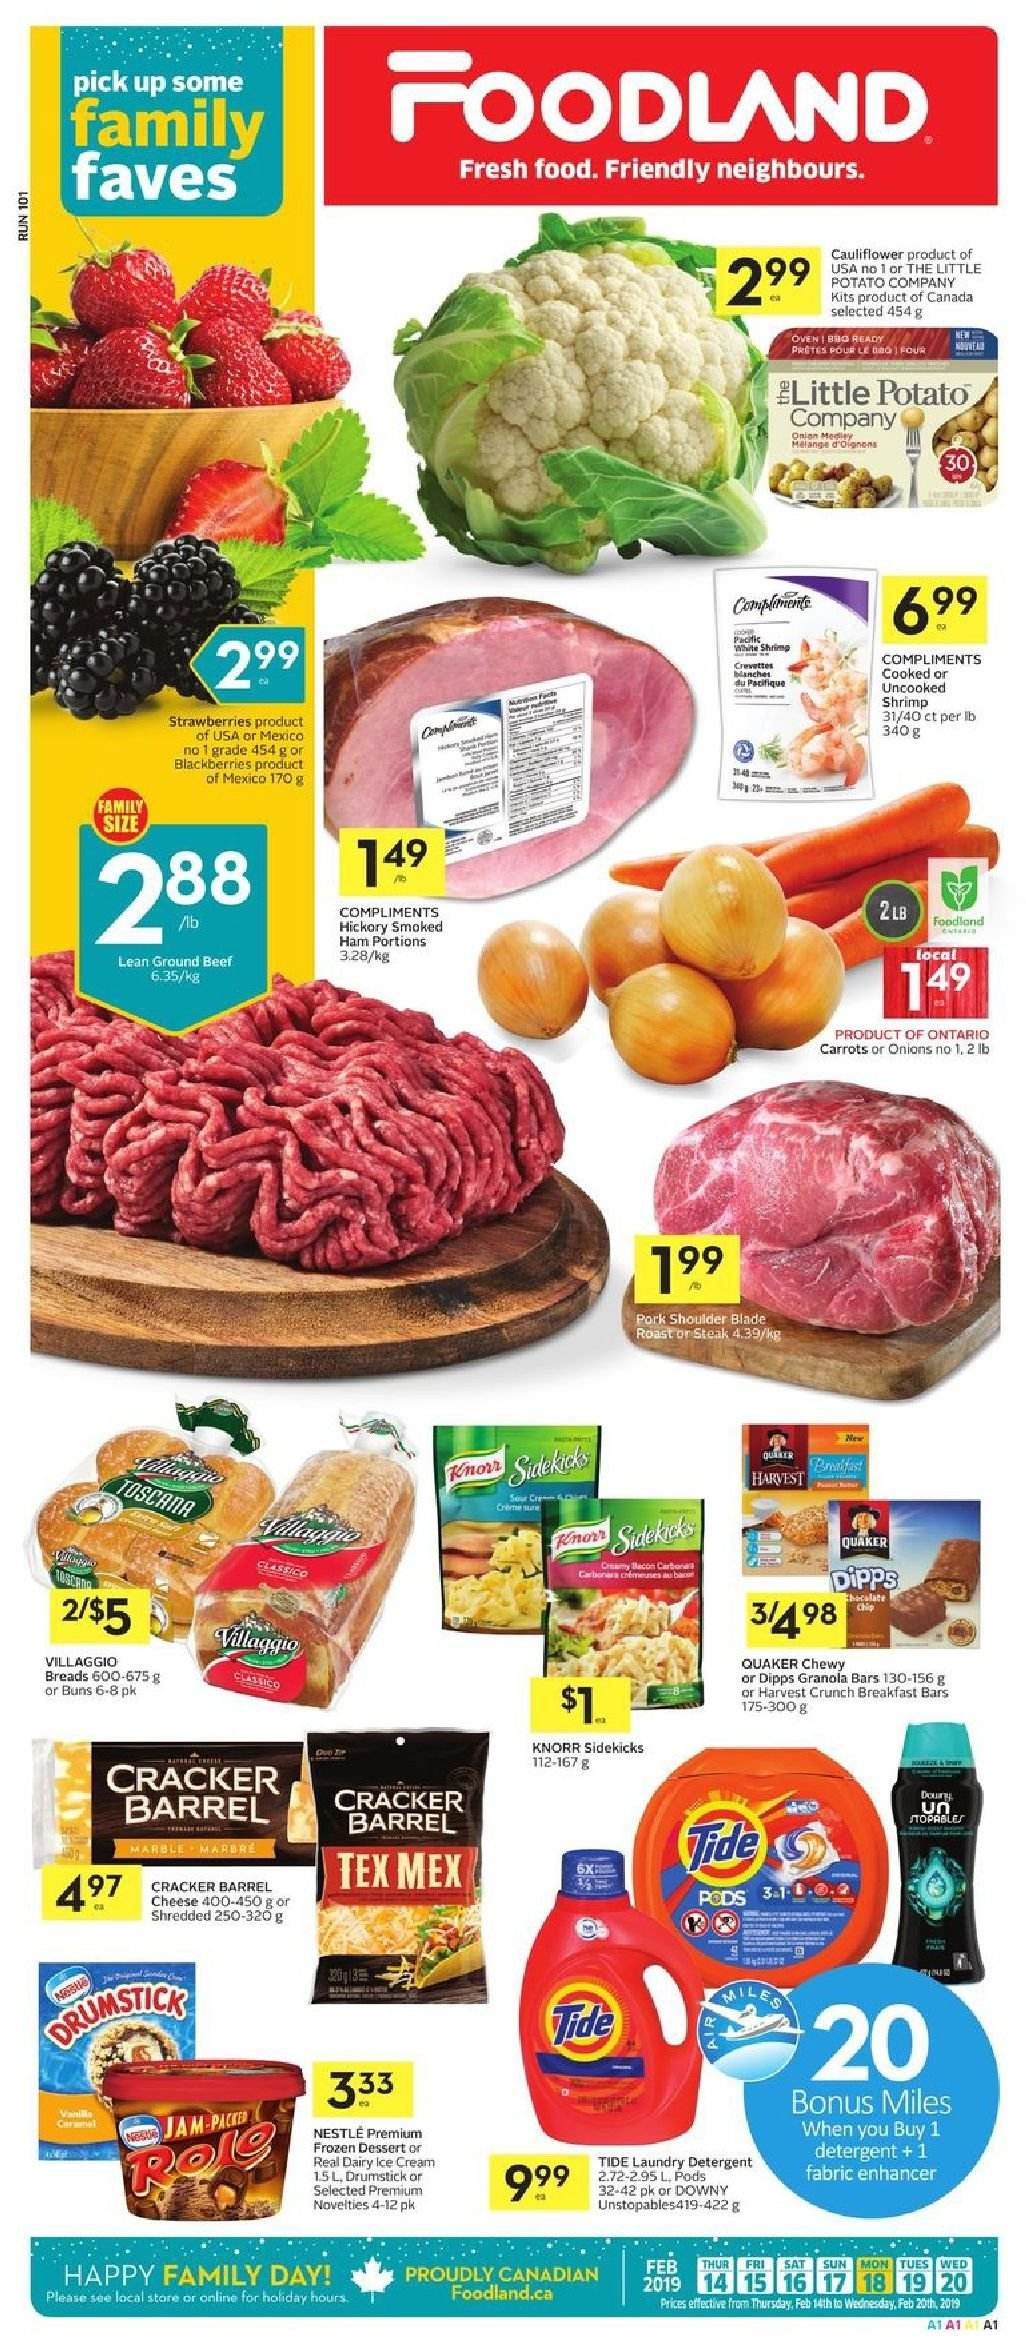 Foodland Flyer  - February 14, 2019 - February 20, 2019. Page 1.